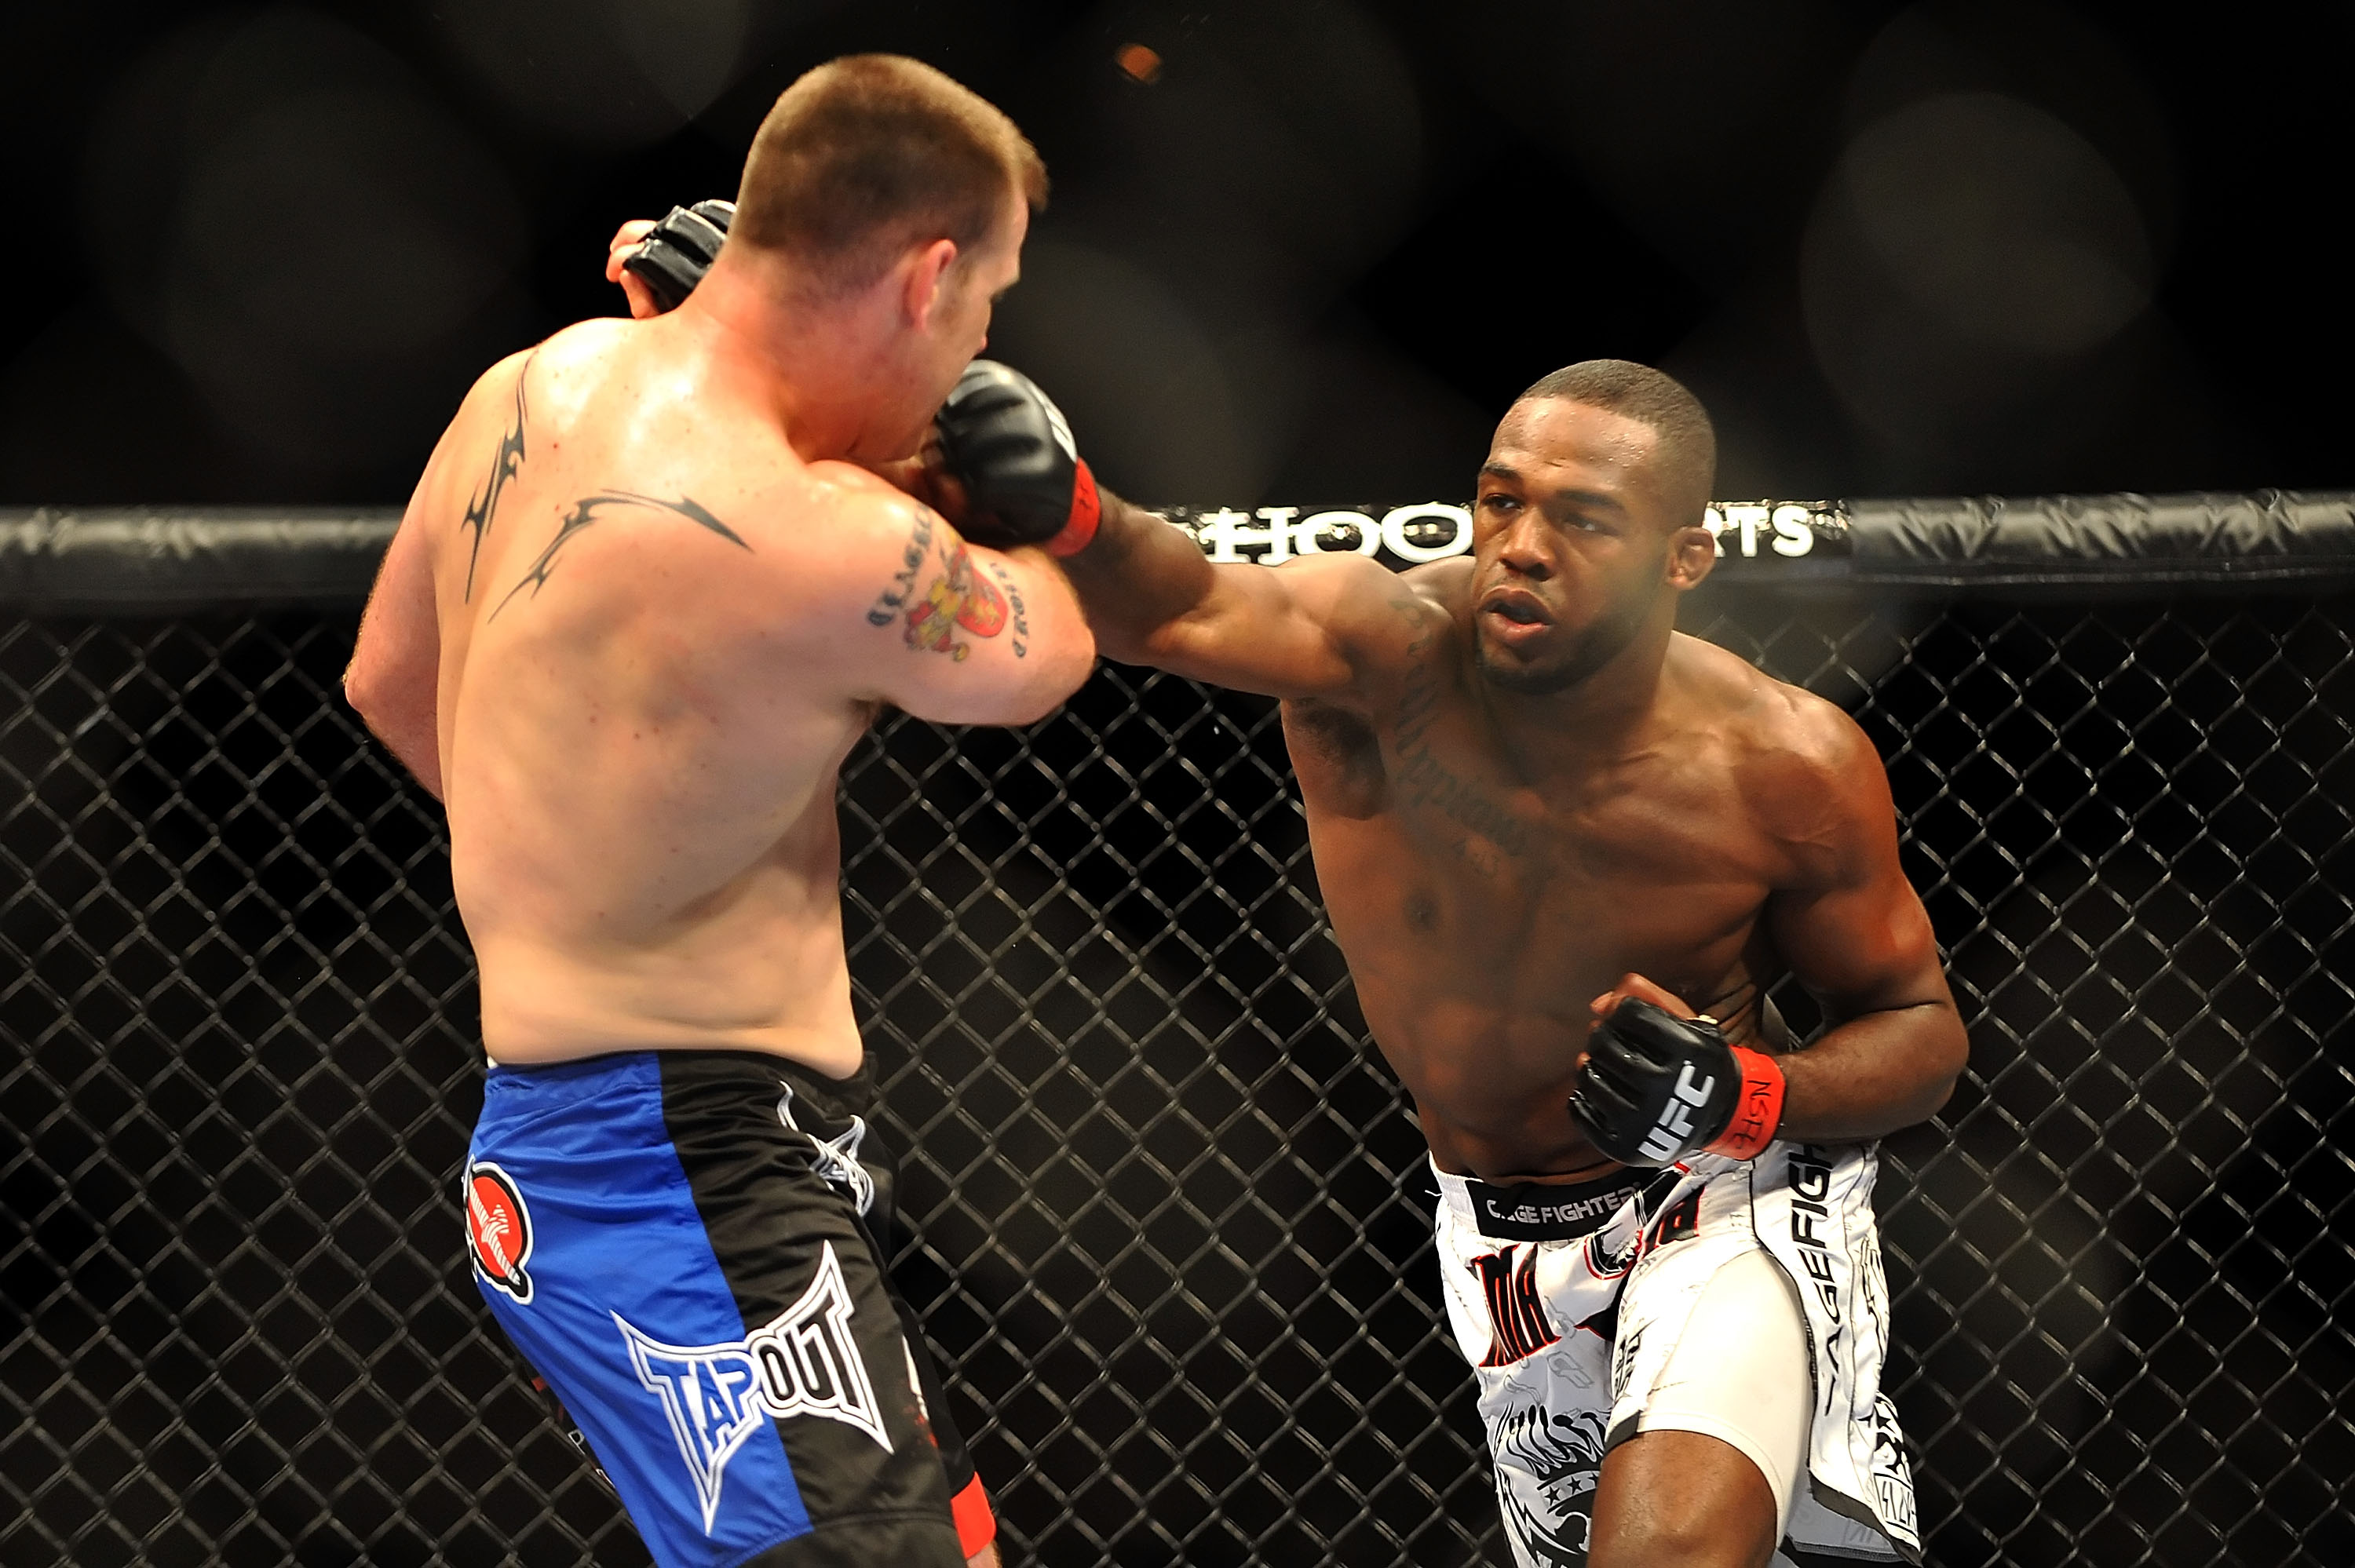 LAS VEGAS - JULY 11:  (R-L) Jon Jones connects with a right punch on Jake O'Brein during their light heavyweight bout during UFC 100 on July 11, 2009 in Las Vegas, Nevada. Jones defeated O'Brein by second round tapout.  (Photo by Jon Kopaloff/Getty Images